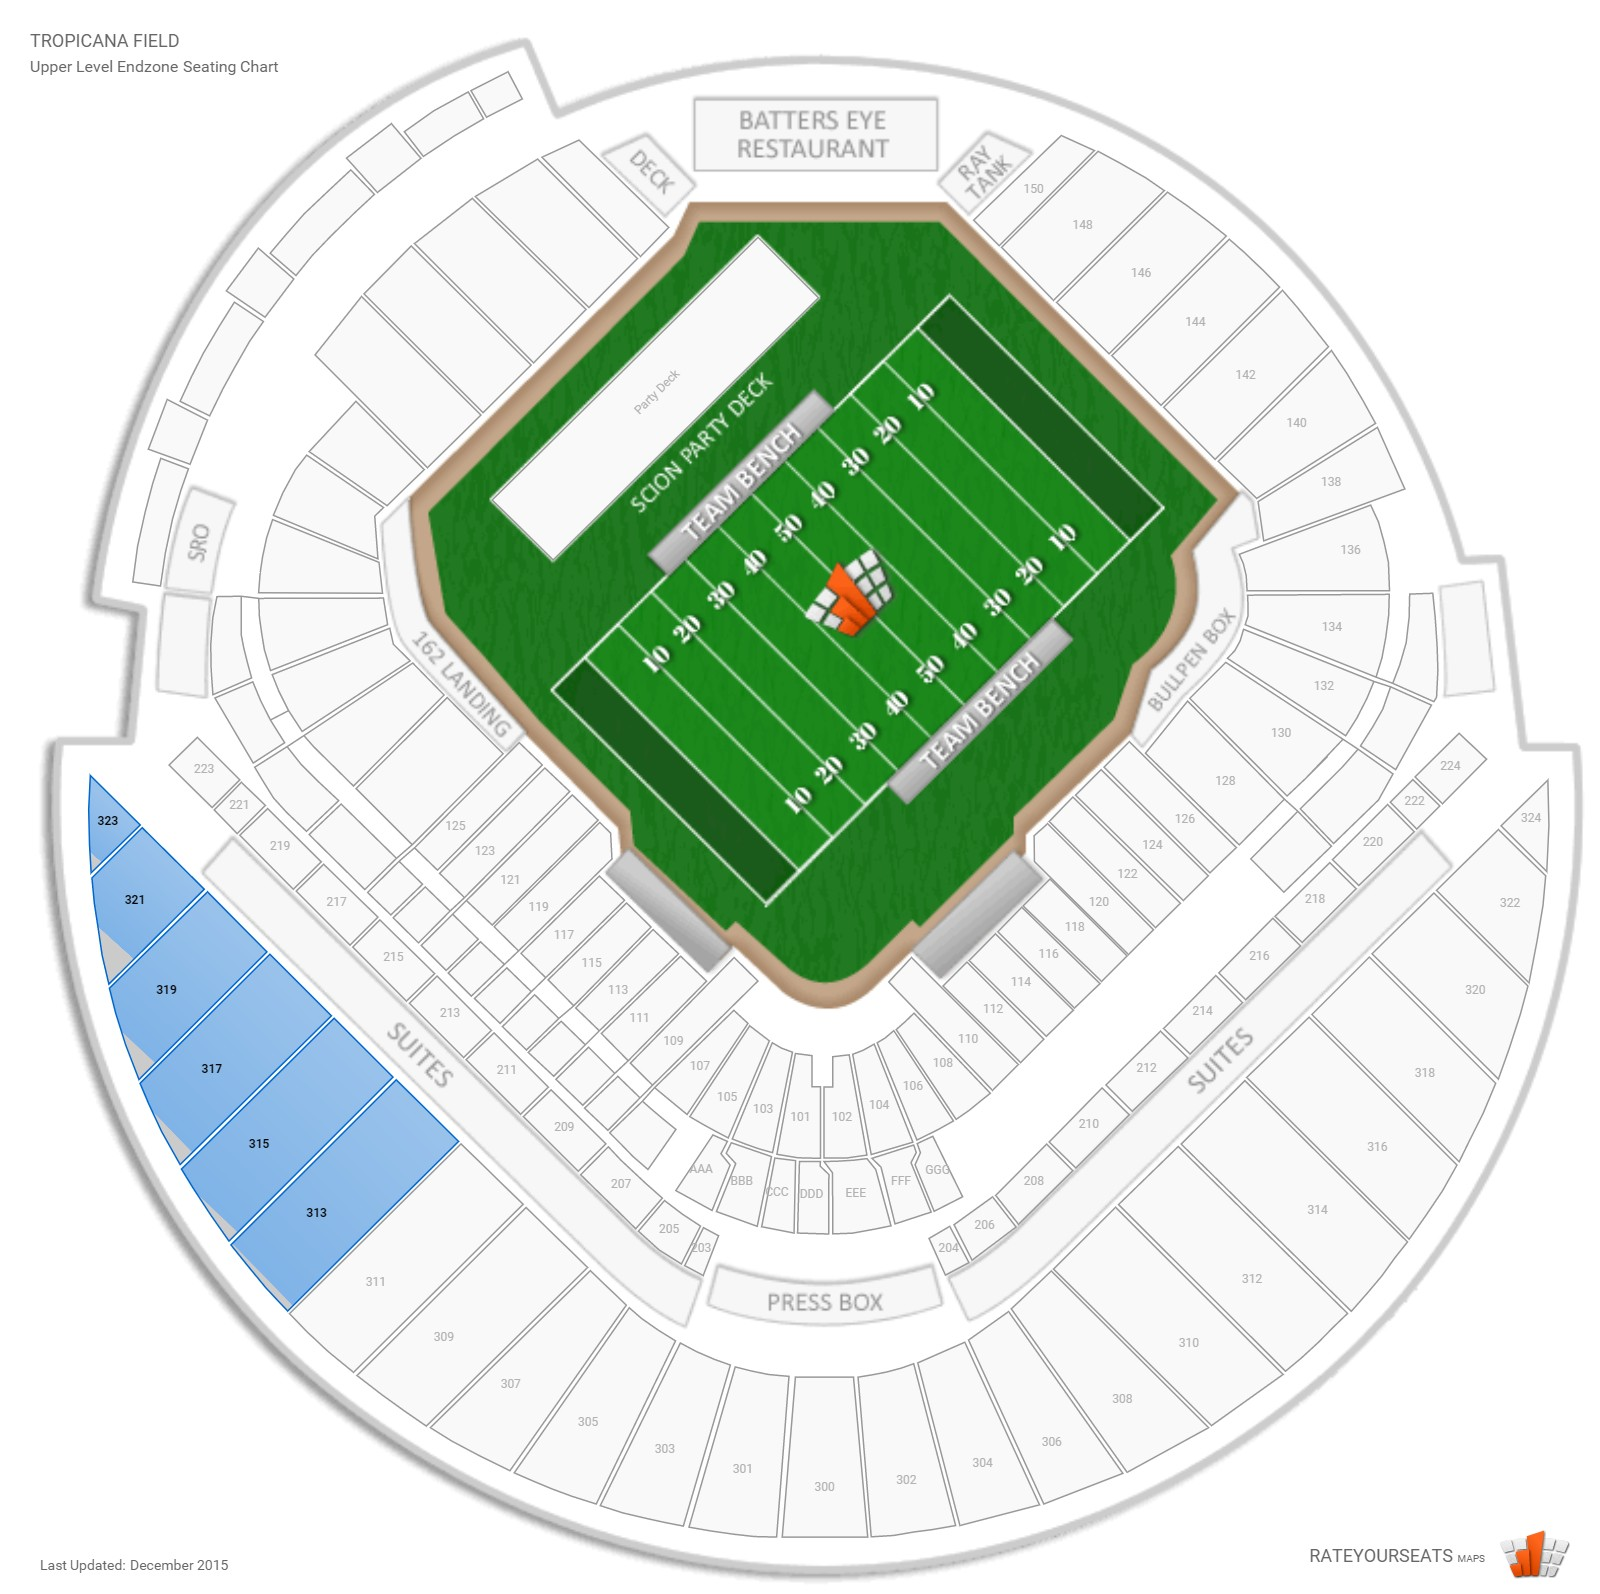 Tropicana Field Upper Level Endzone seating chart